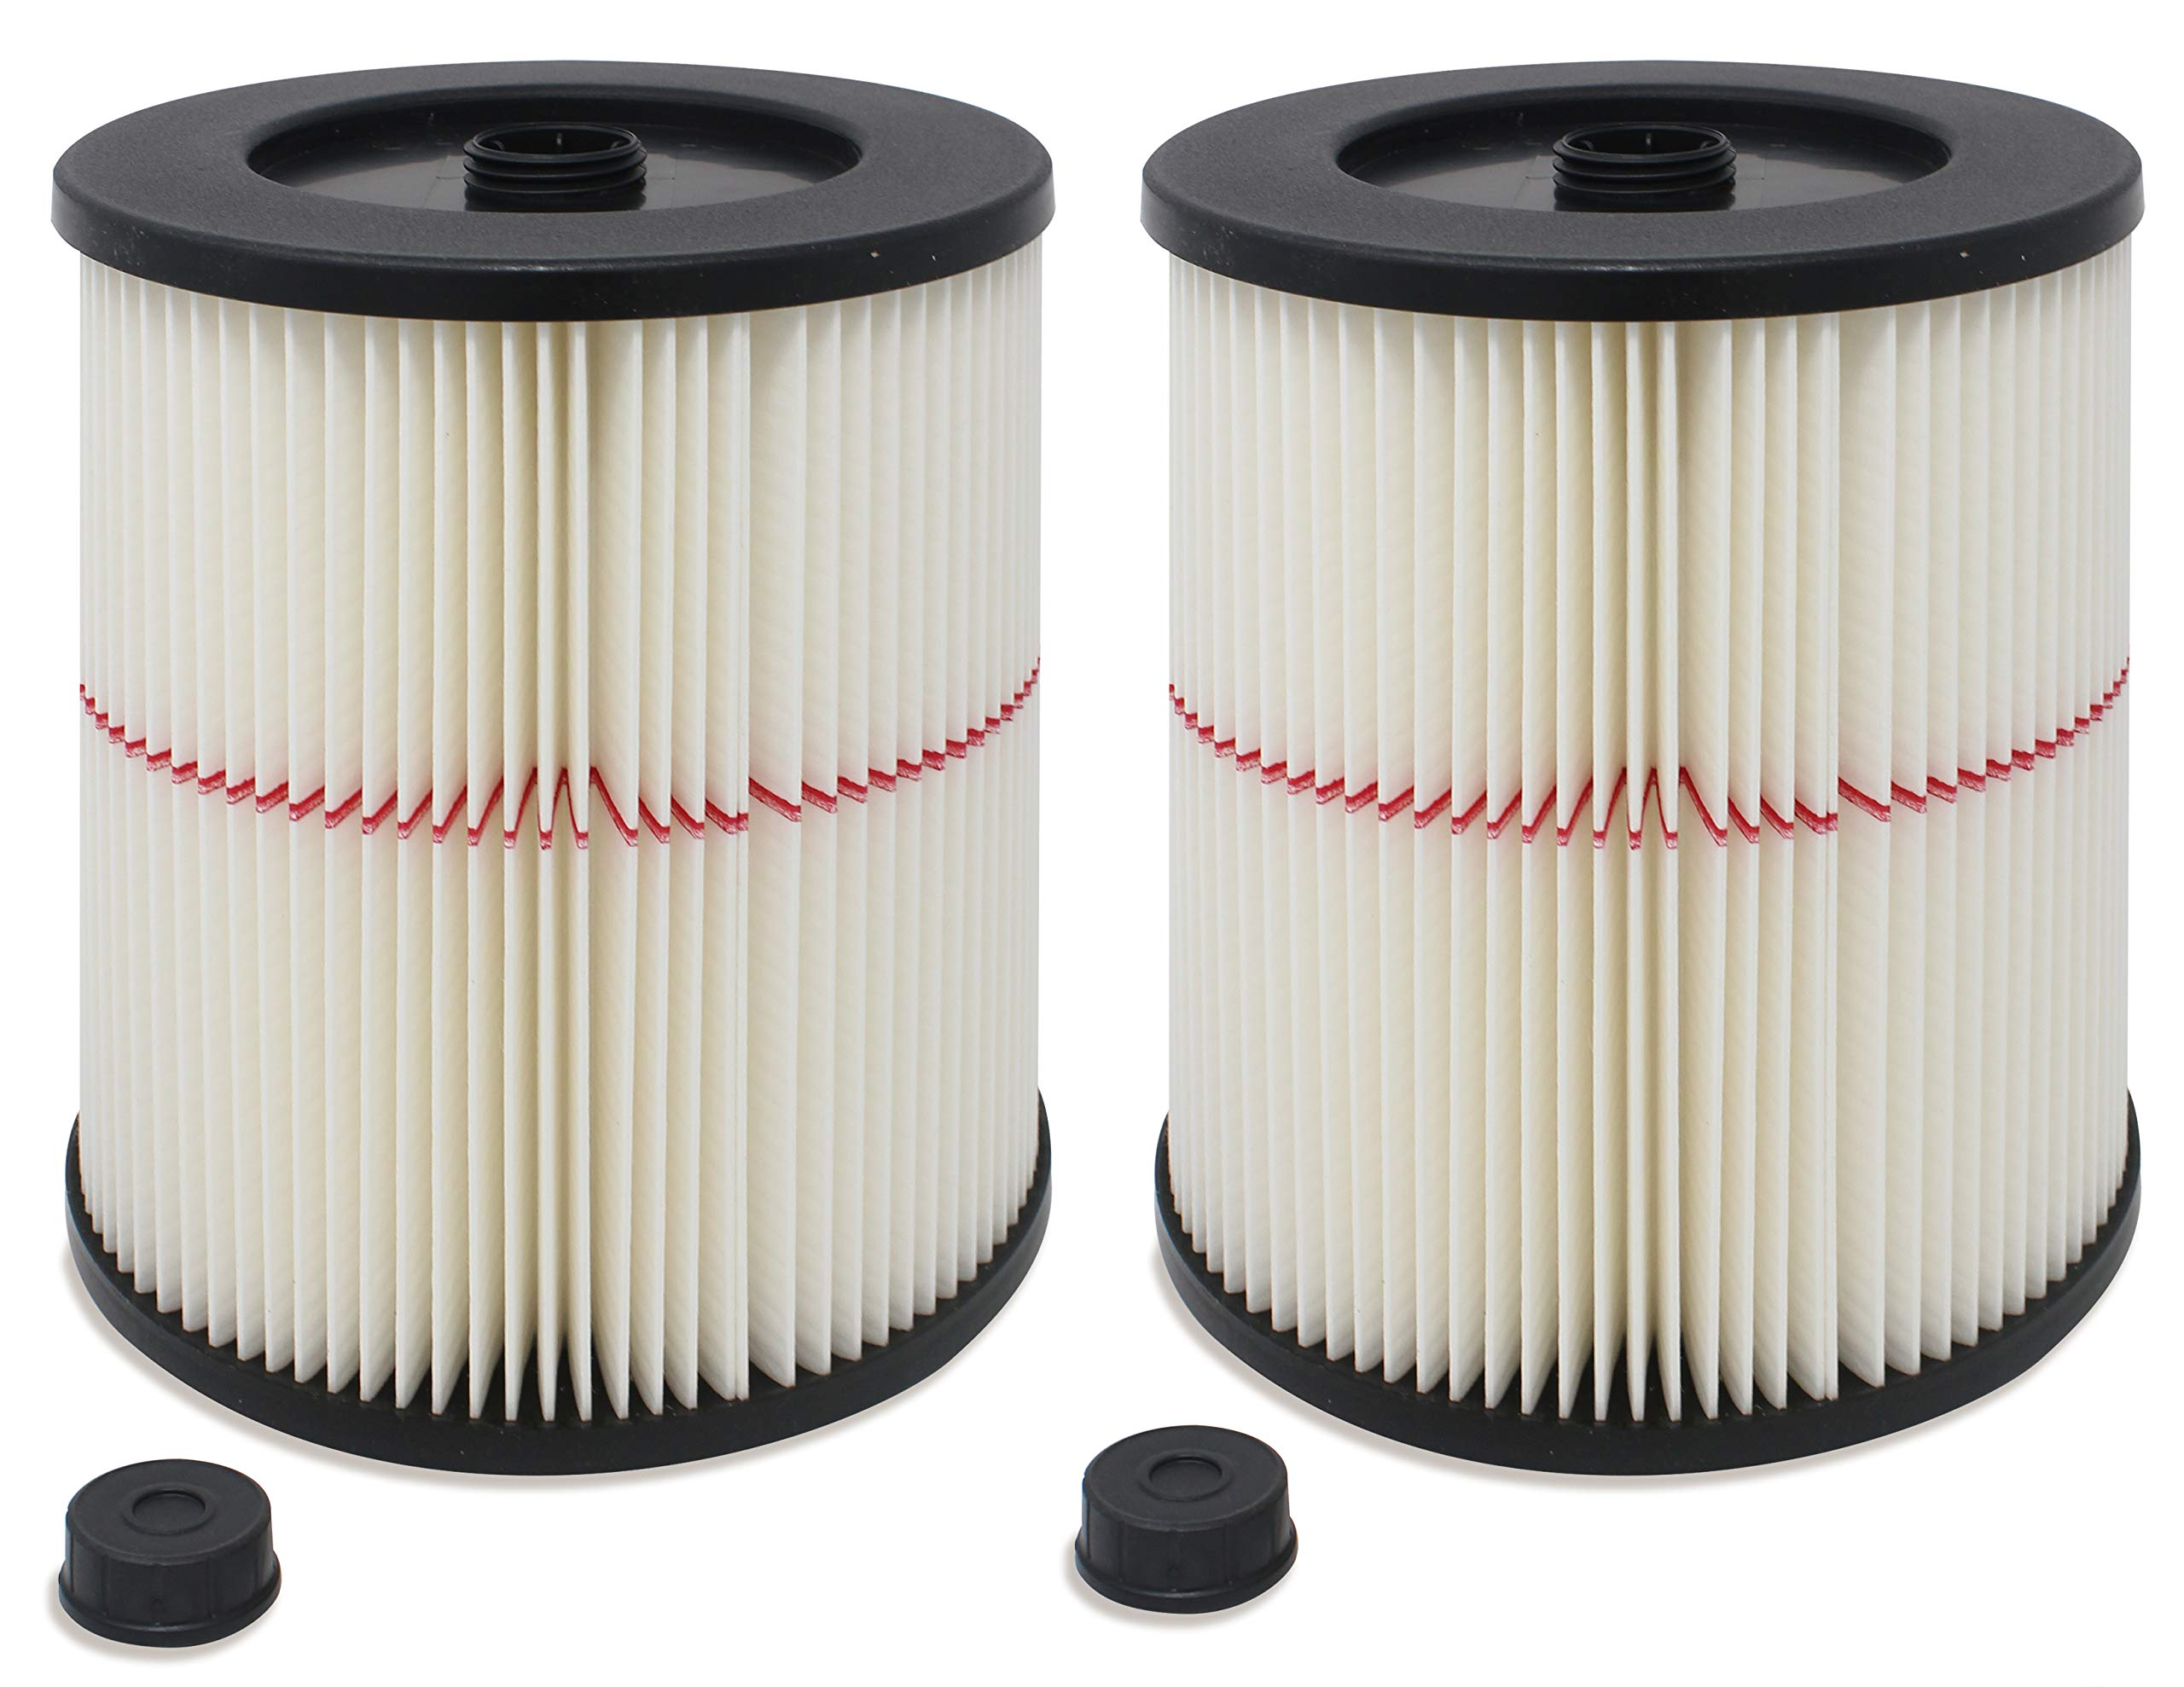 Fette Filter - General Purpose Cartridge Filter Compatible with Craftsman Red Stripe Vac. Compare to Part # 17816 & 9-17816. (Pack of 2) by Fette Filter